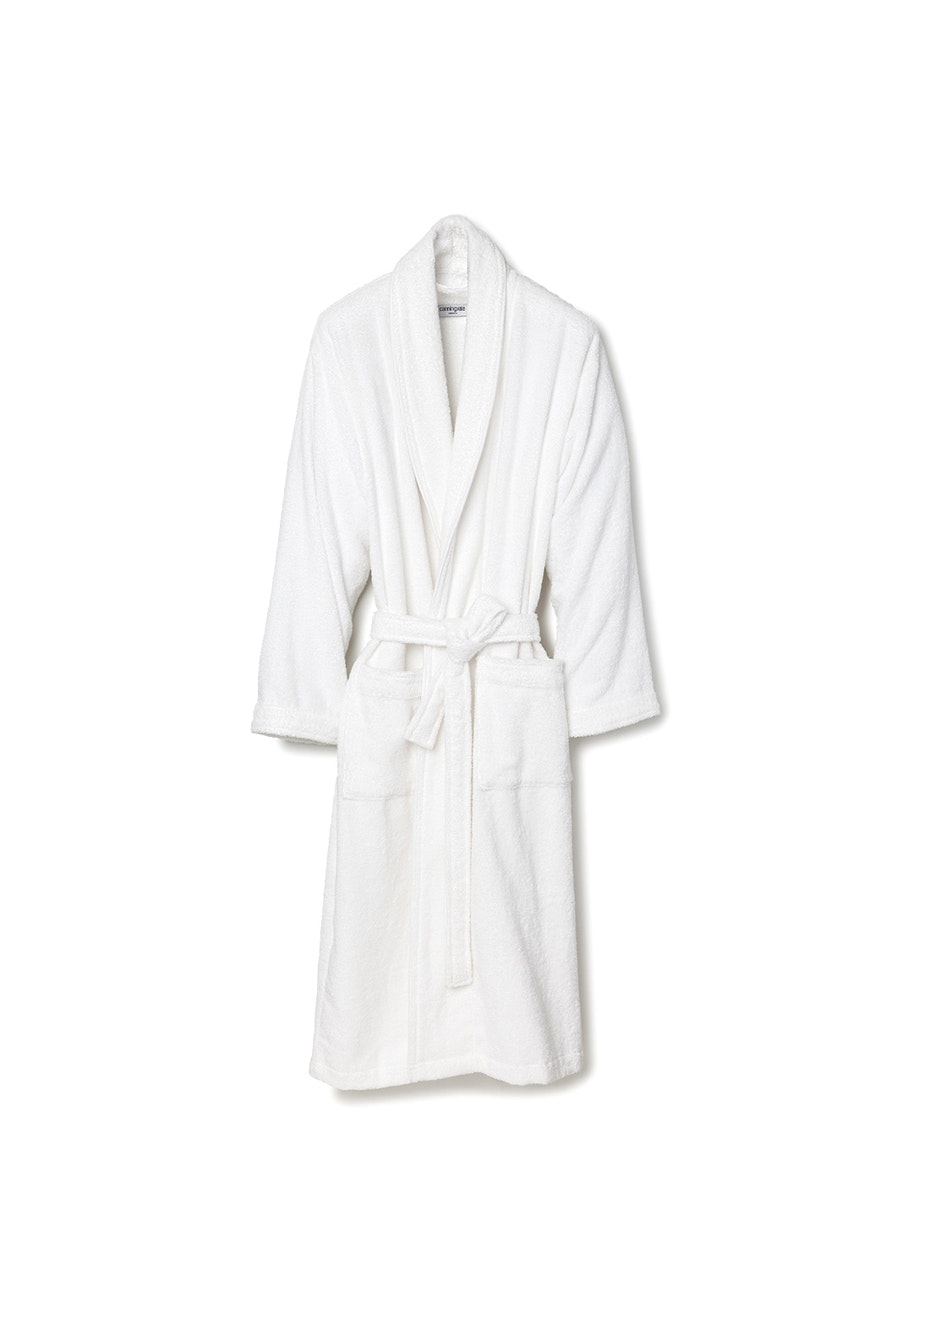 Canningvale - Medium Classic Cotton Terry Bathrobe - White